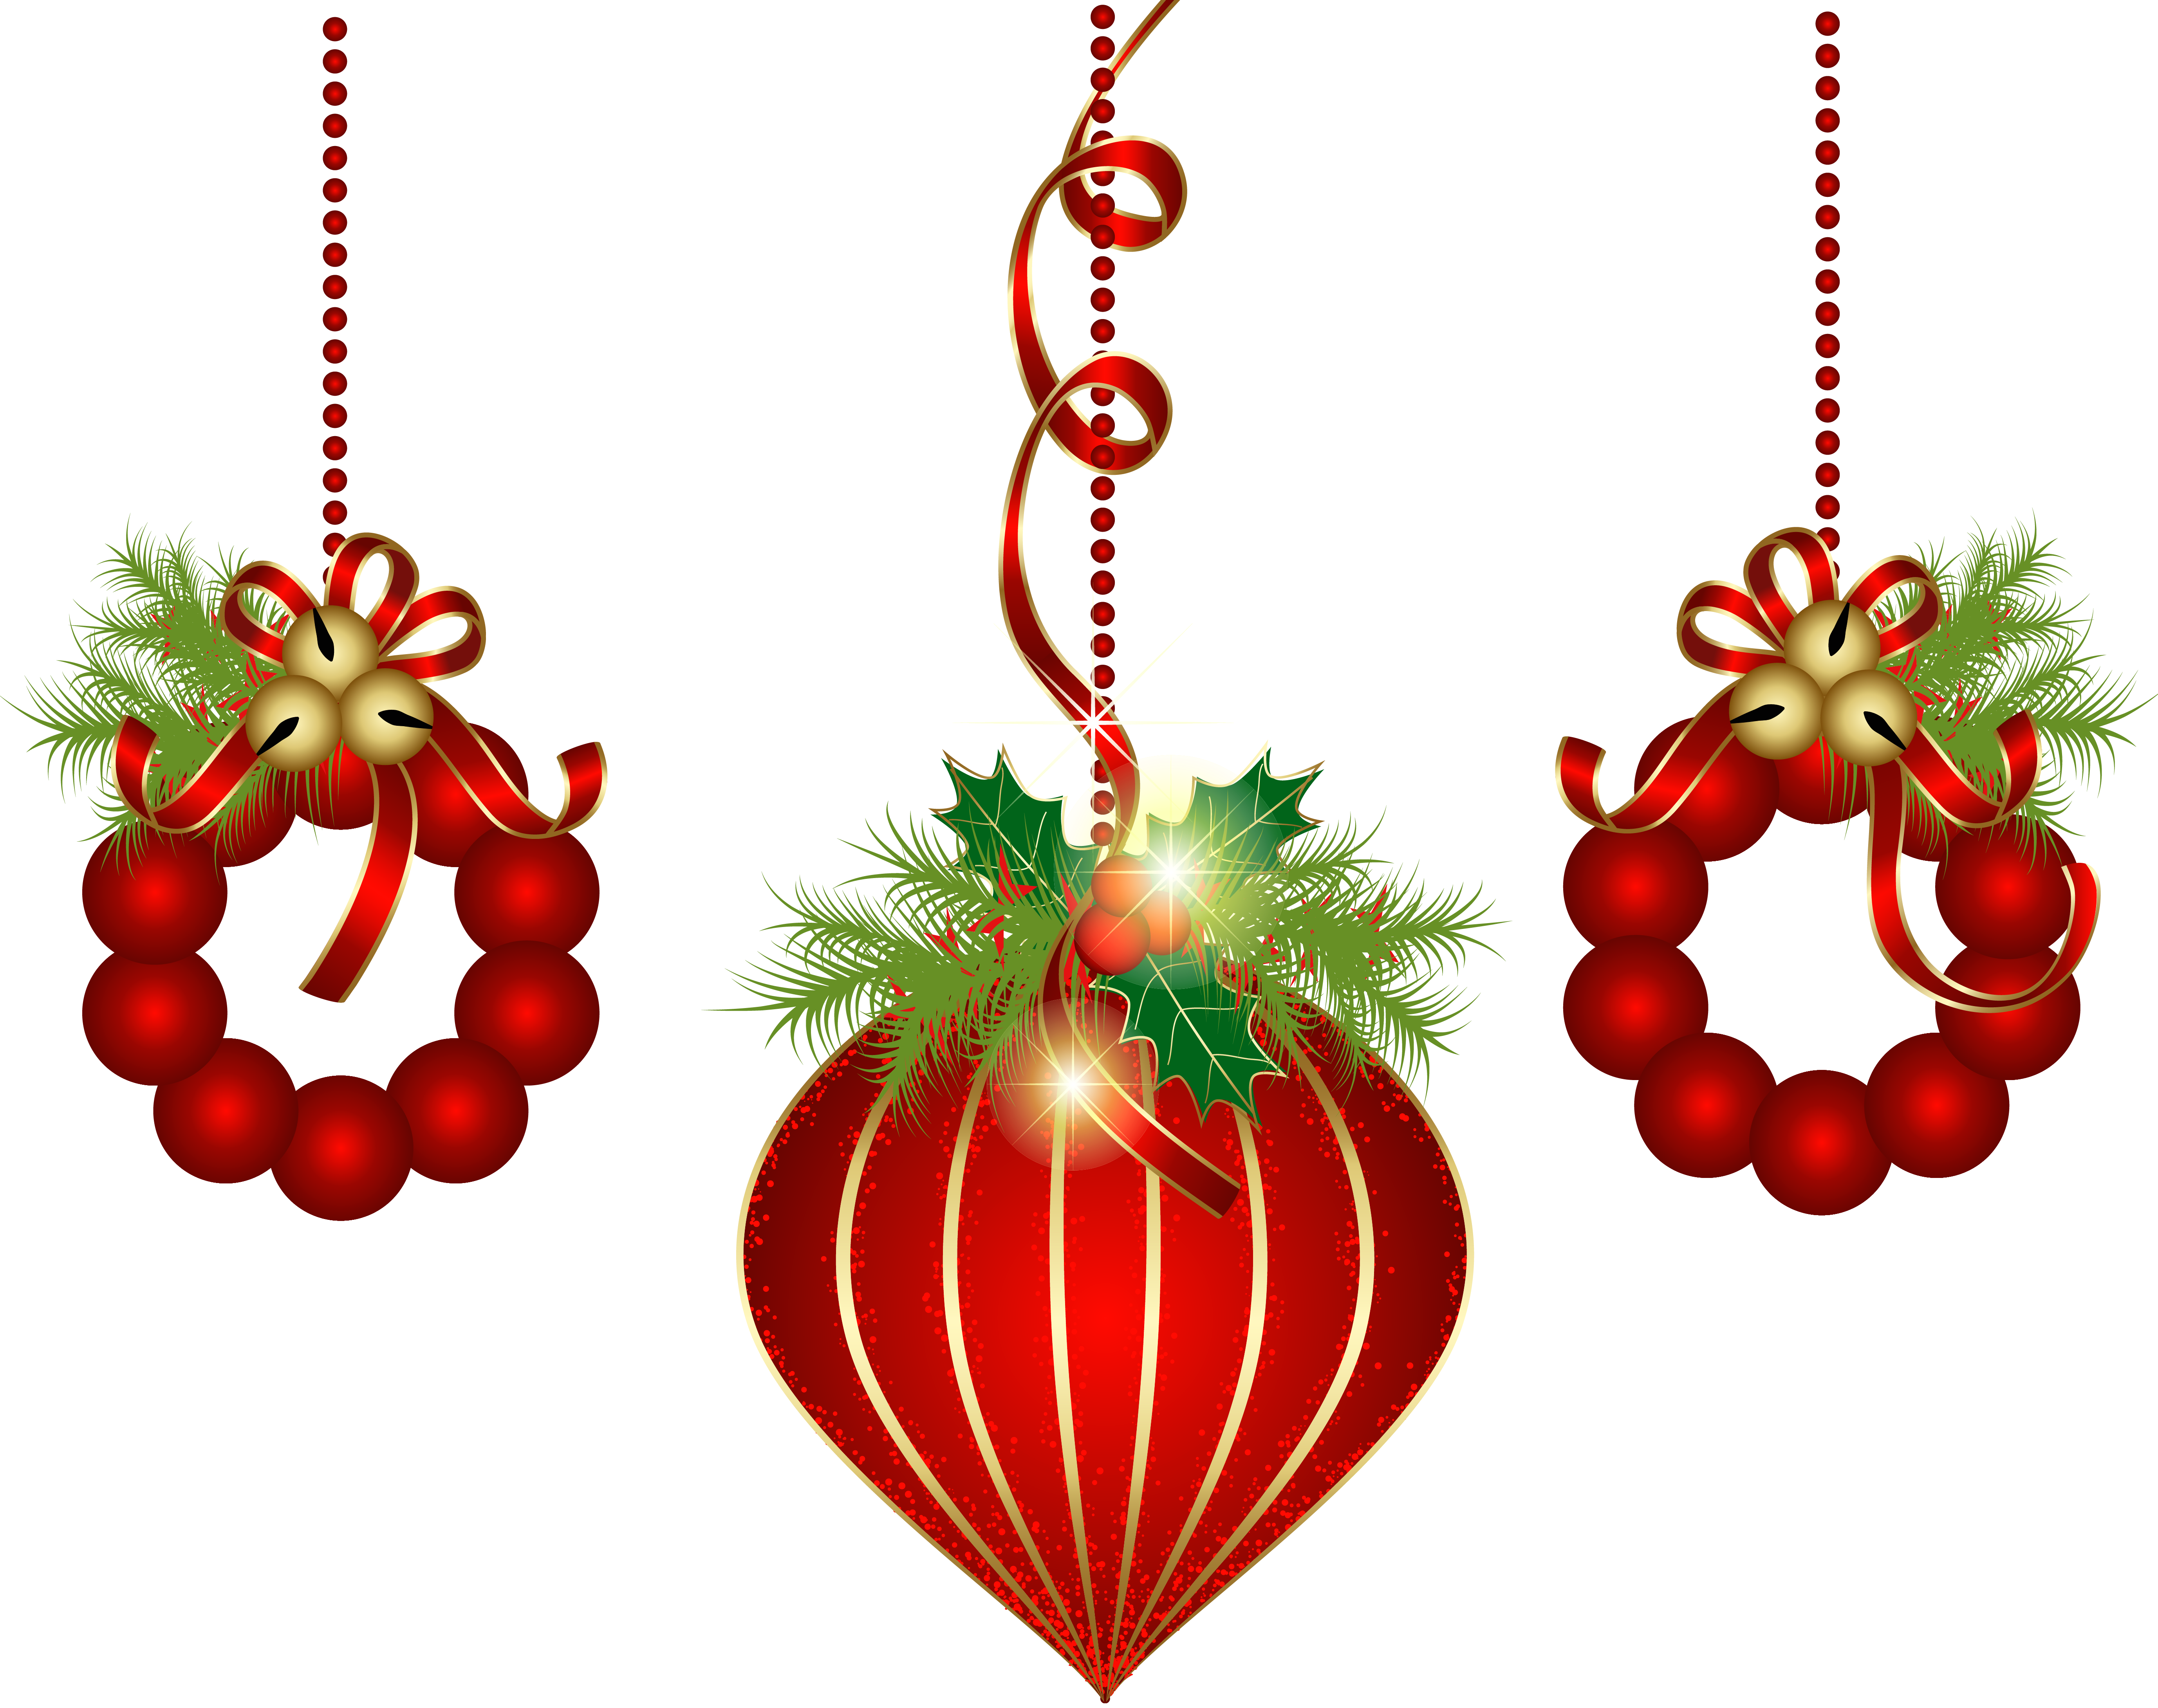 Transparent red ornaments png. Clipart key christmas